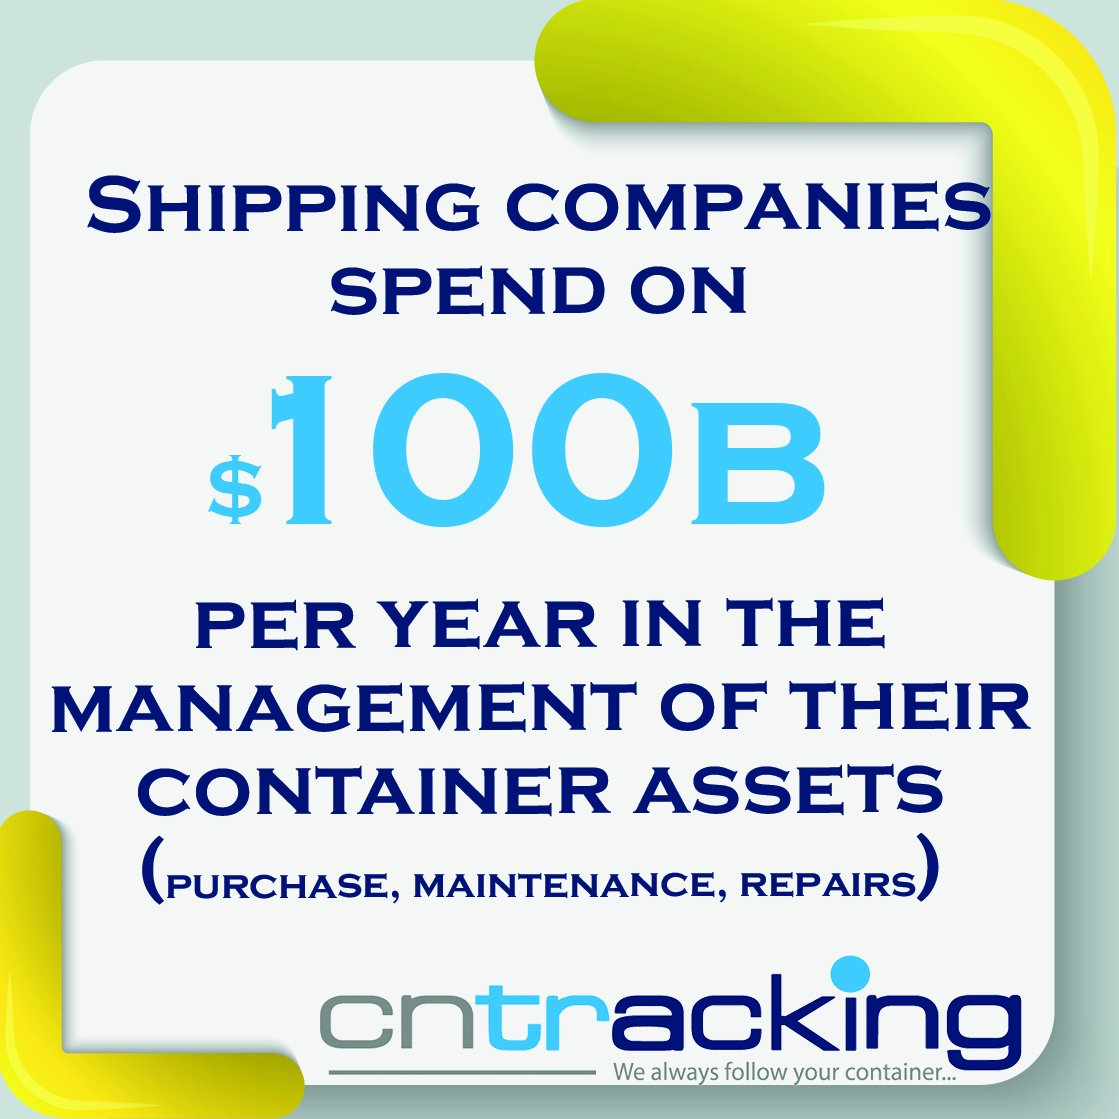 Did #you #know ?  #Shipping #companies spend on $110b per #year in the #management of their #container #assets<br>http://pic.twitter.com/SZmKY3n0TU